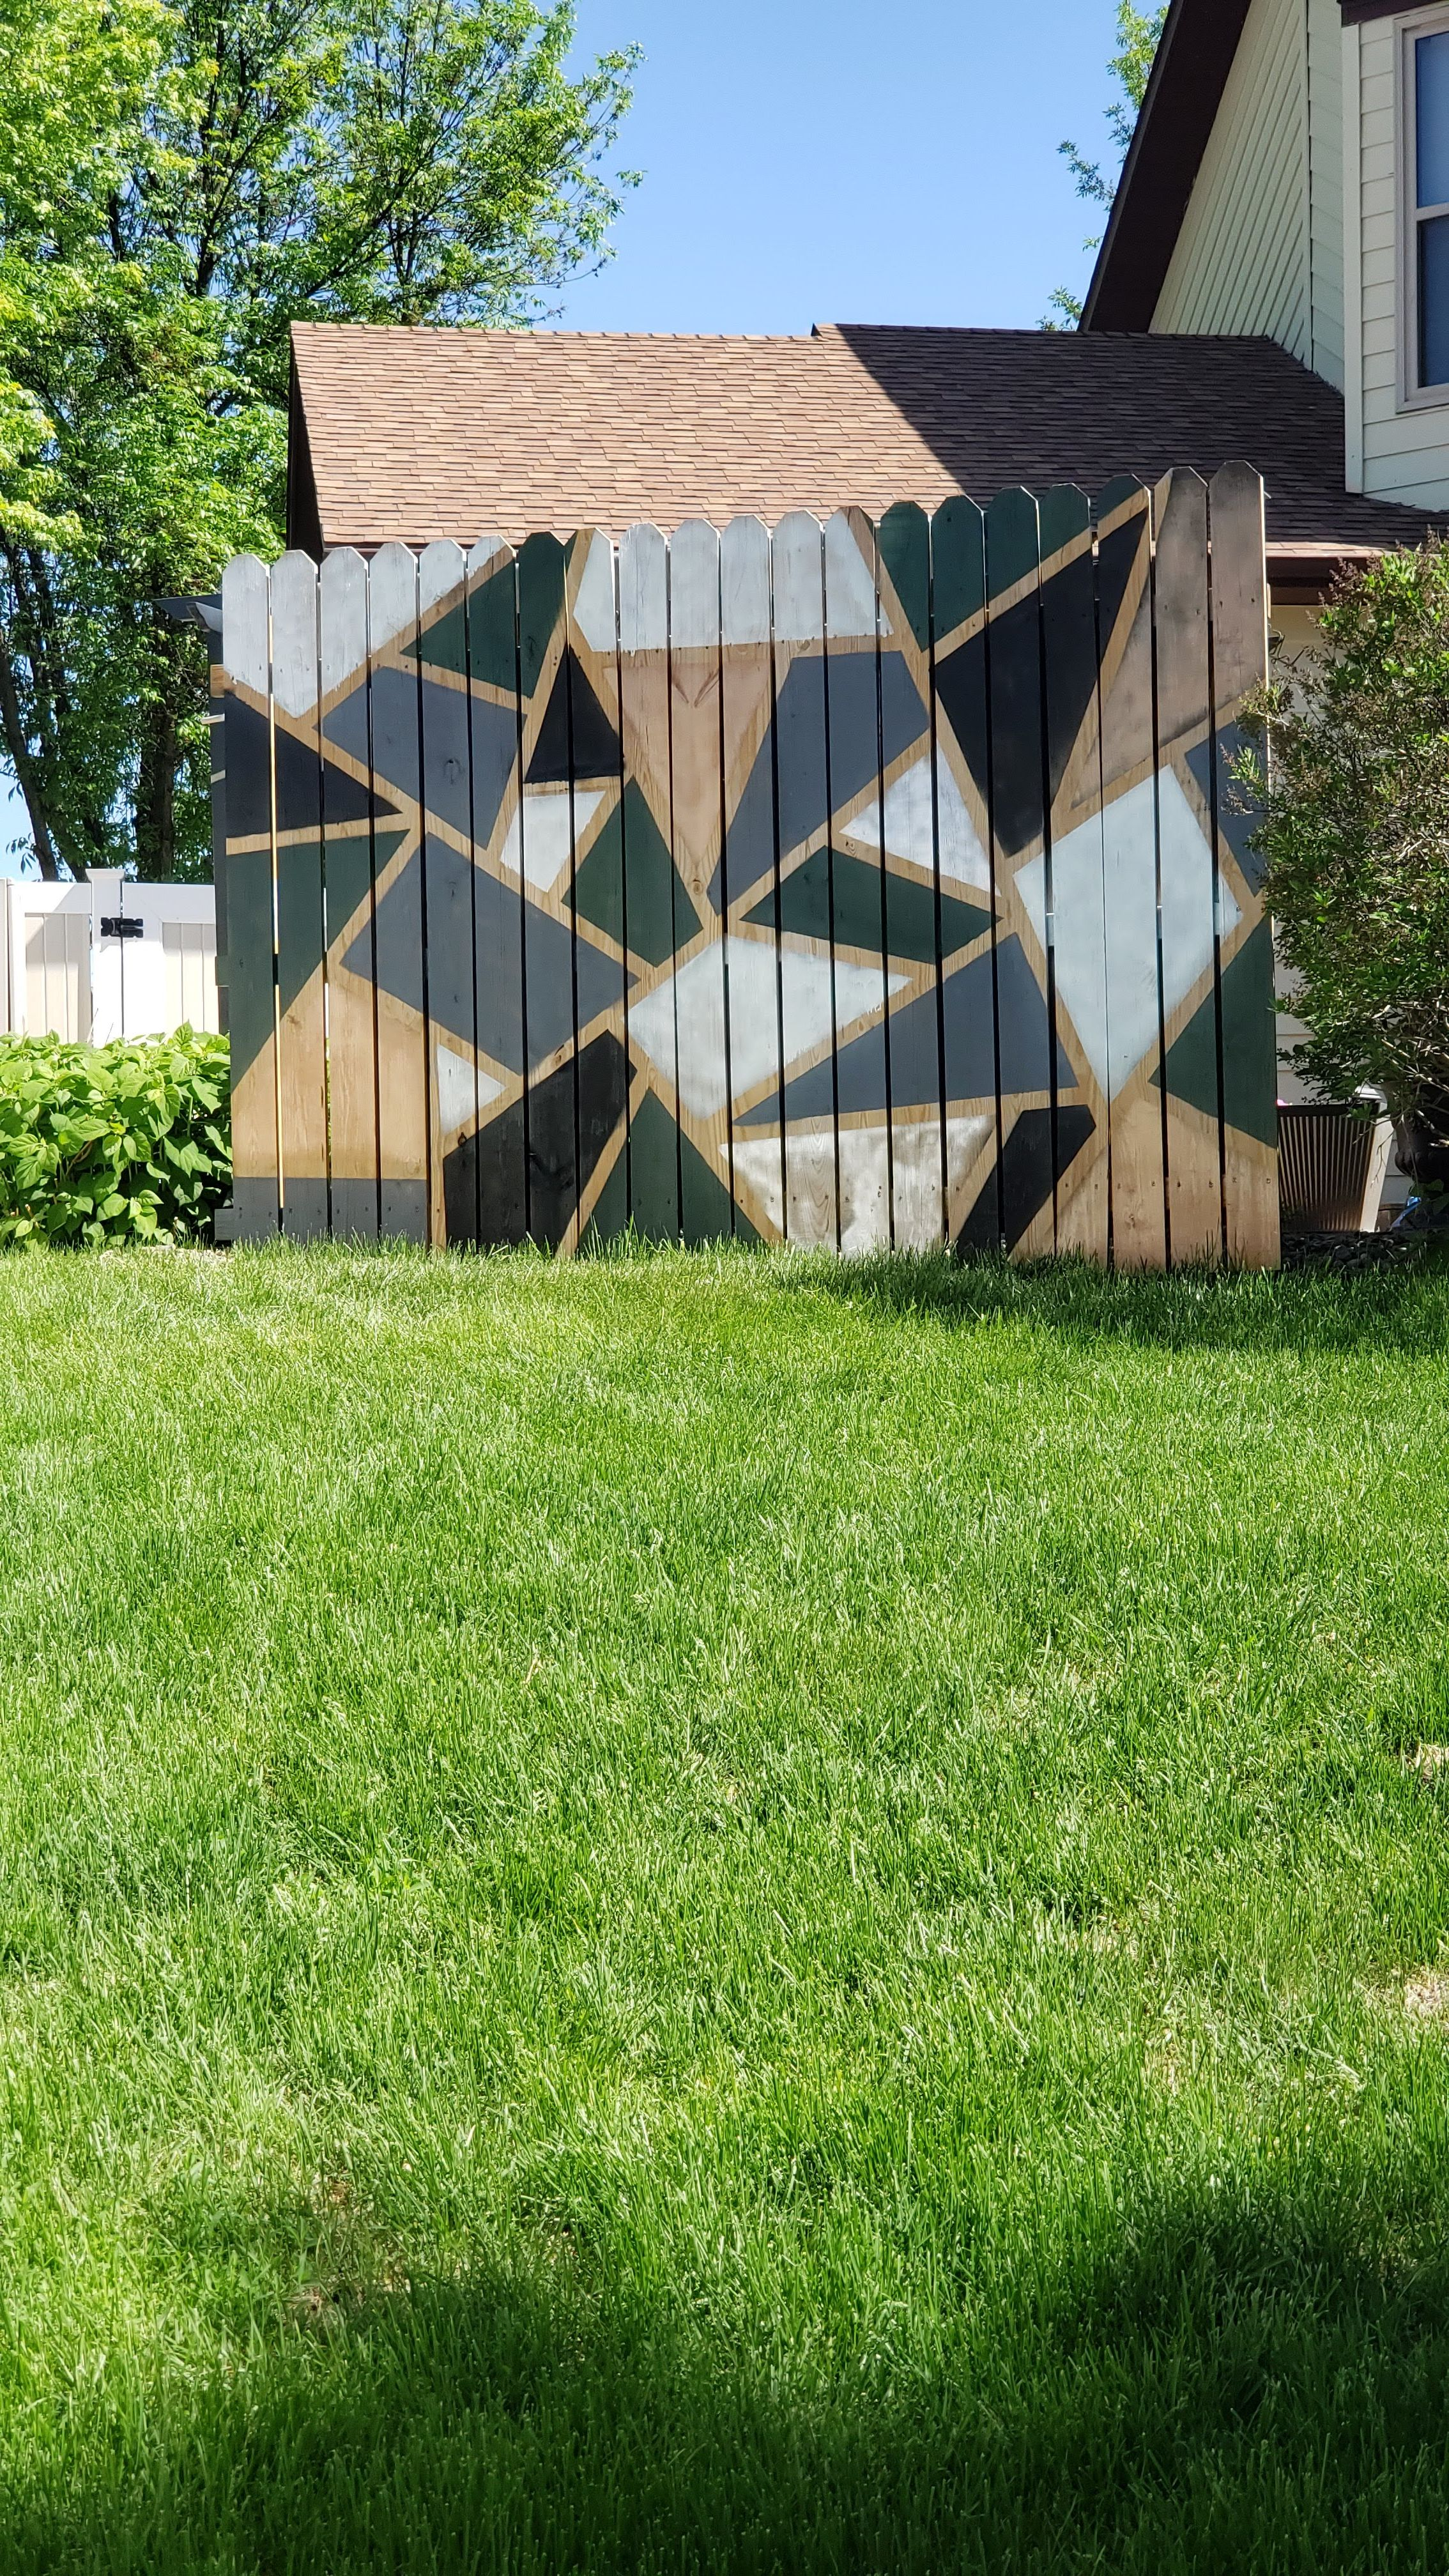 Geometric fence design spray paint in 2020 feature